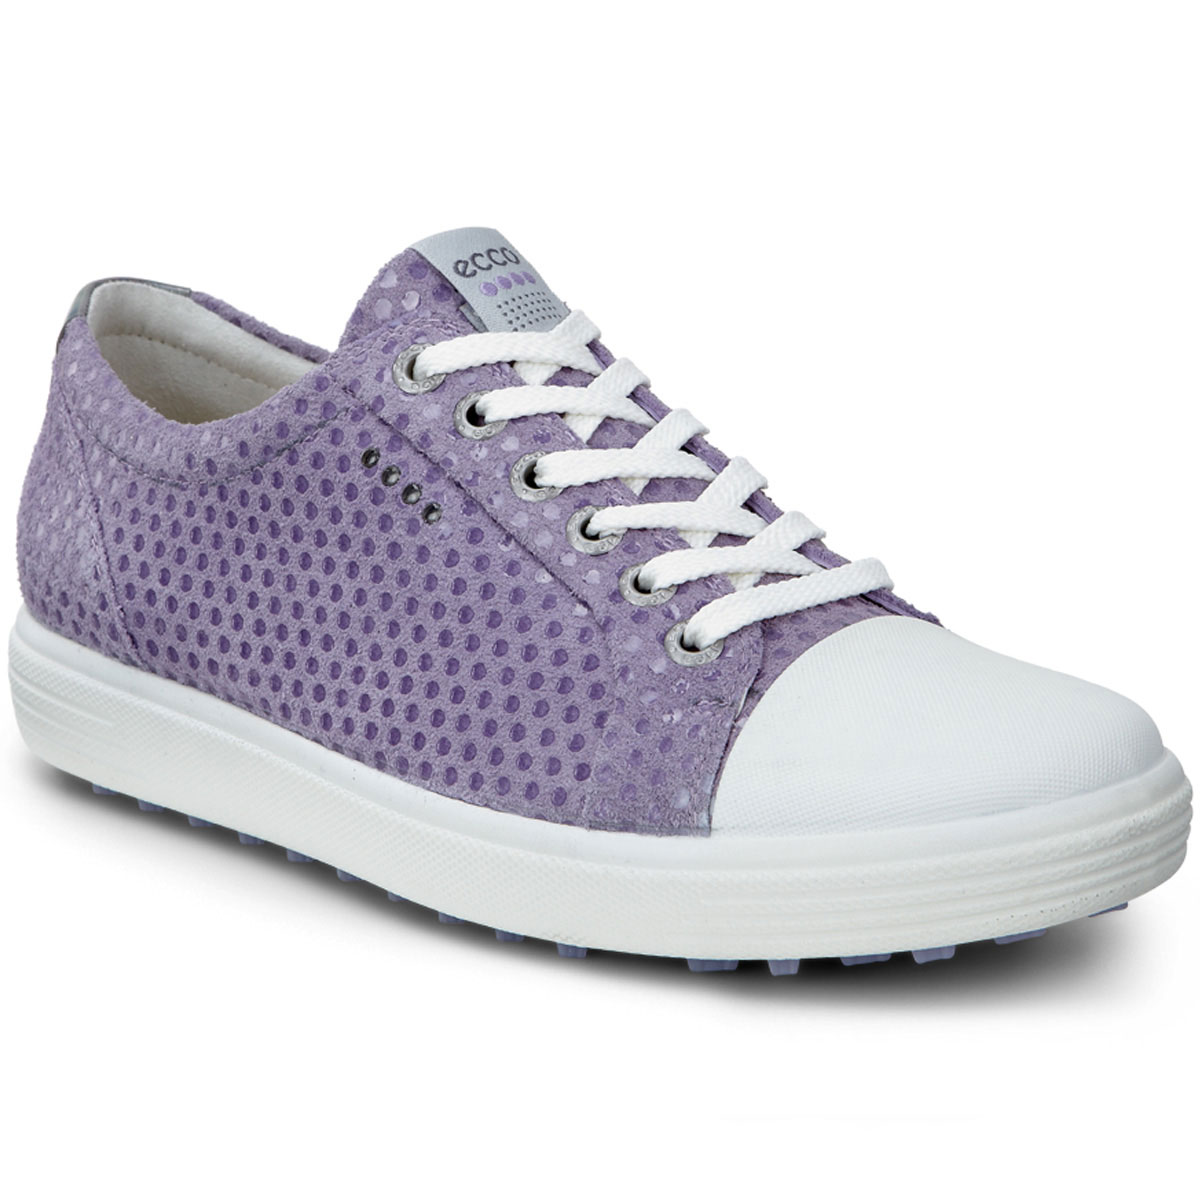 Waterproof Leather Shoes Womens